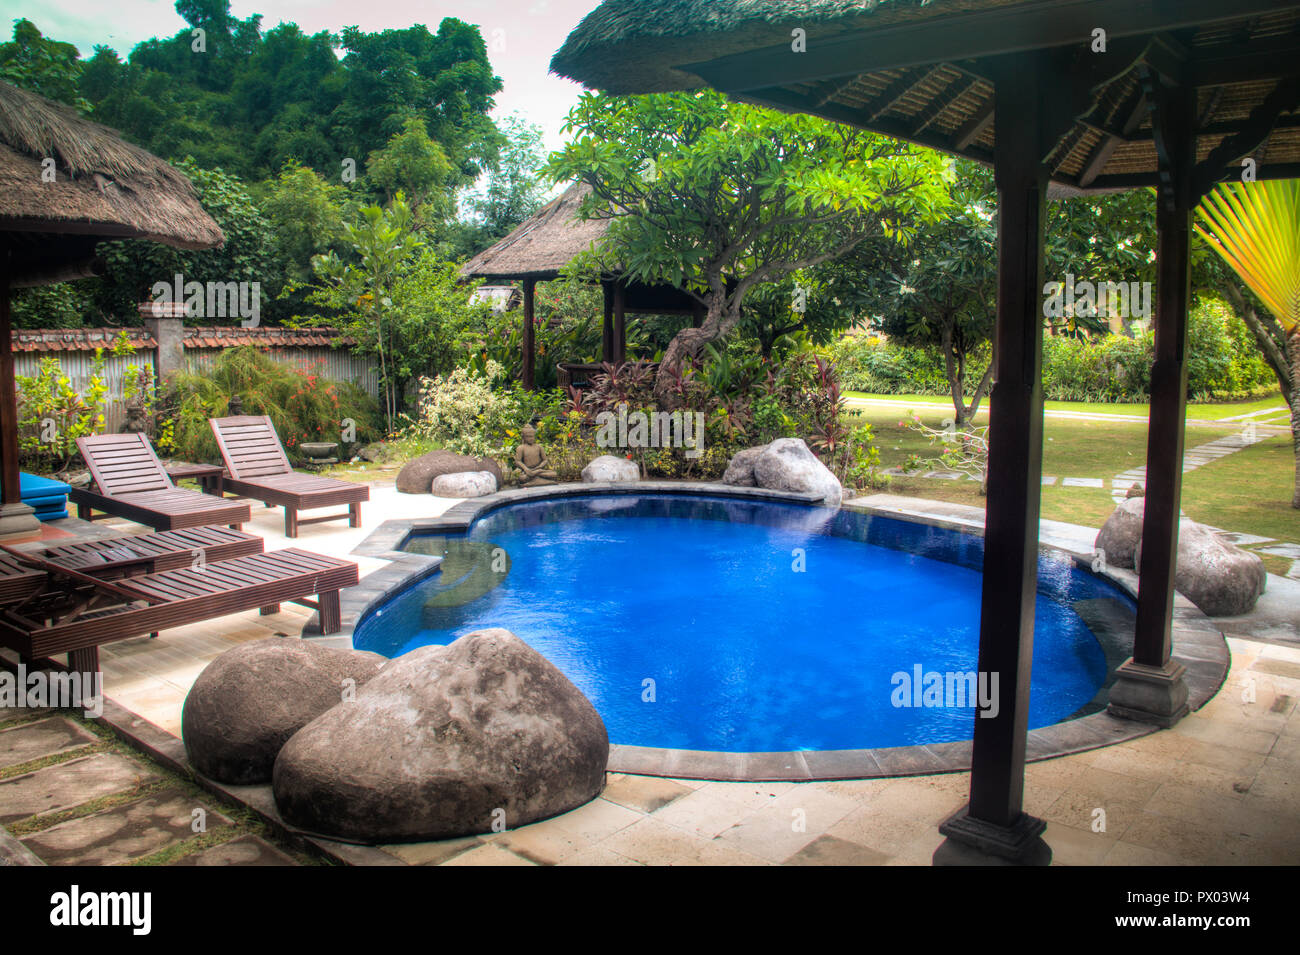 Fancy Hotel Room With Private Swimming Pool In Pemuteran In Bali Indonesia Stock Photo Alamy